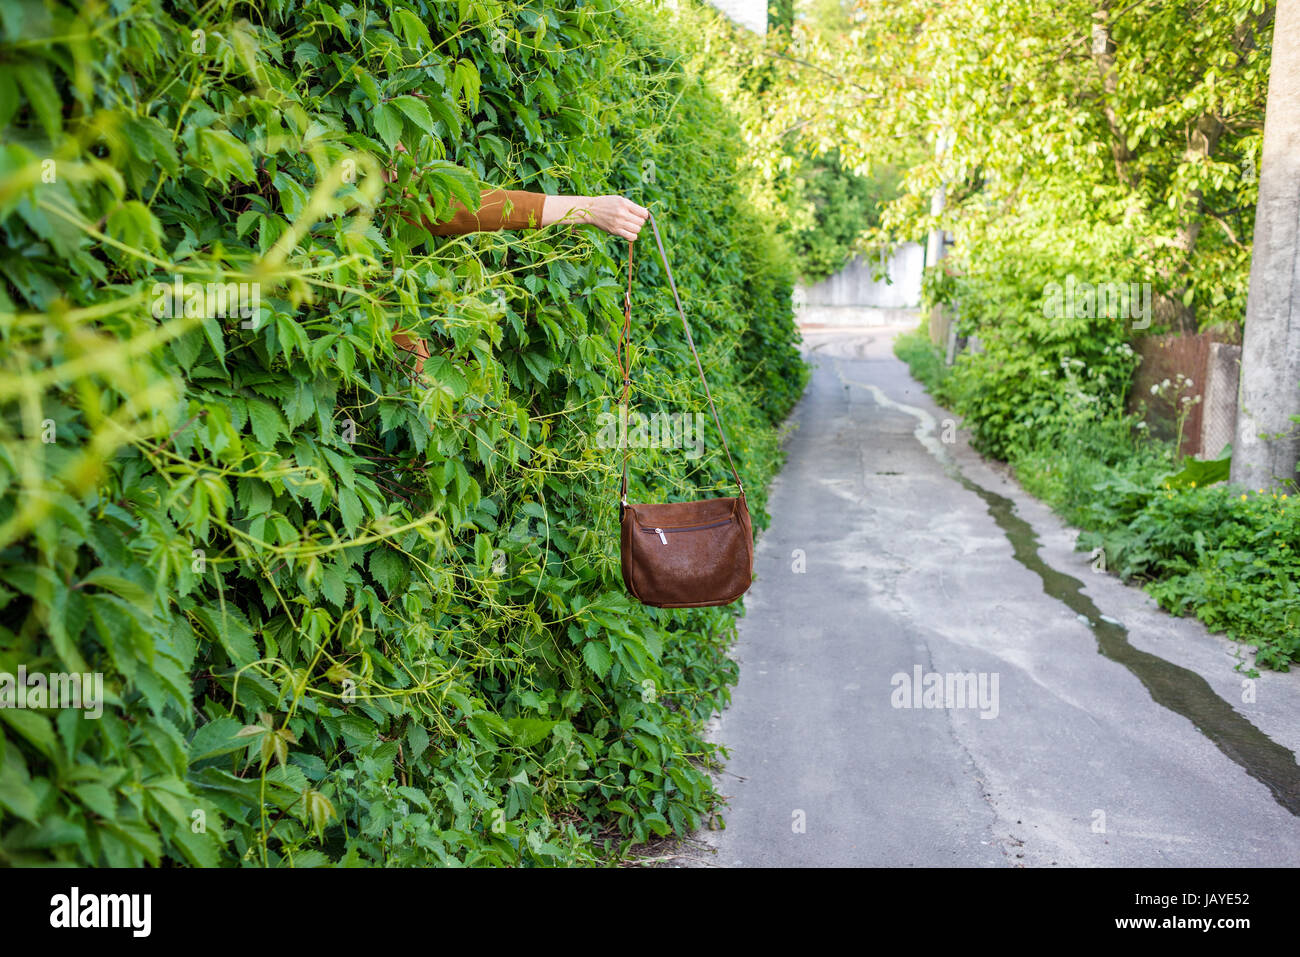 A woman going out from nature - Stock Image